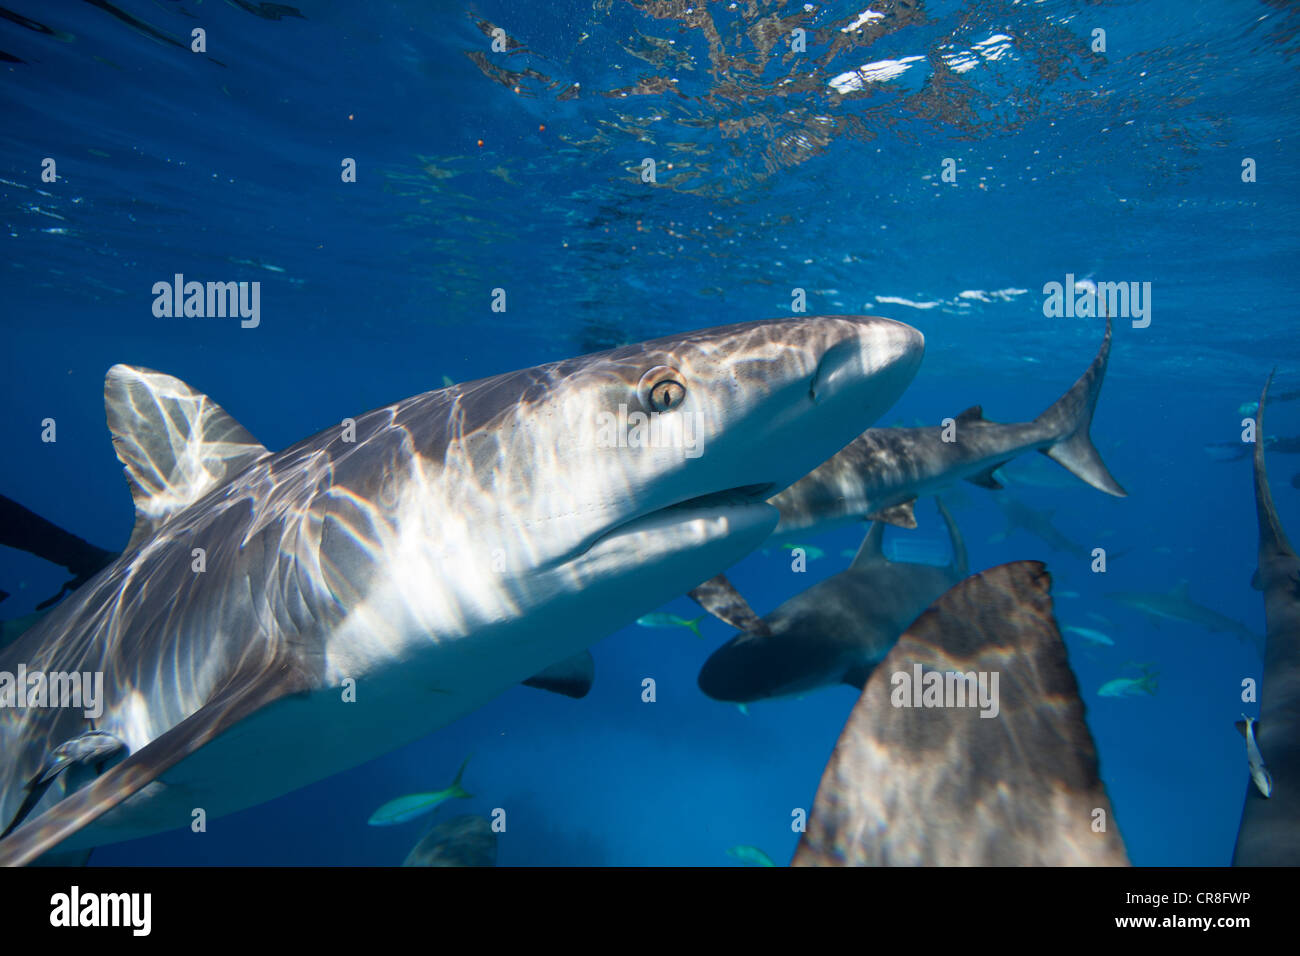 Closeup of Caribbean Reef Shark - Stock Image